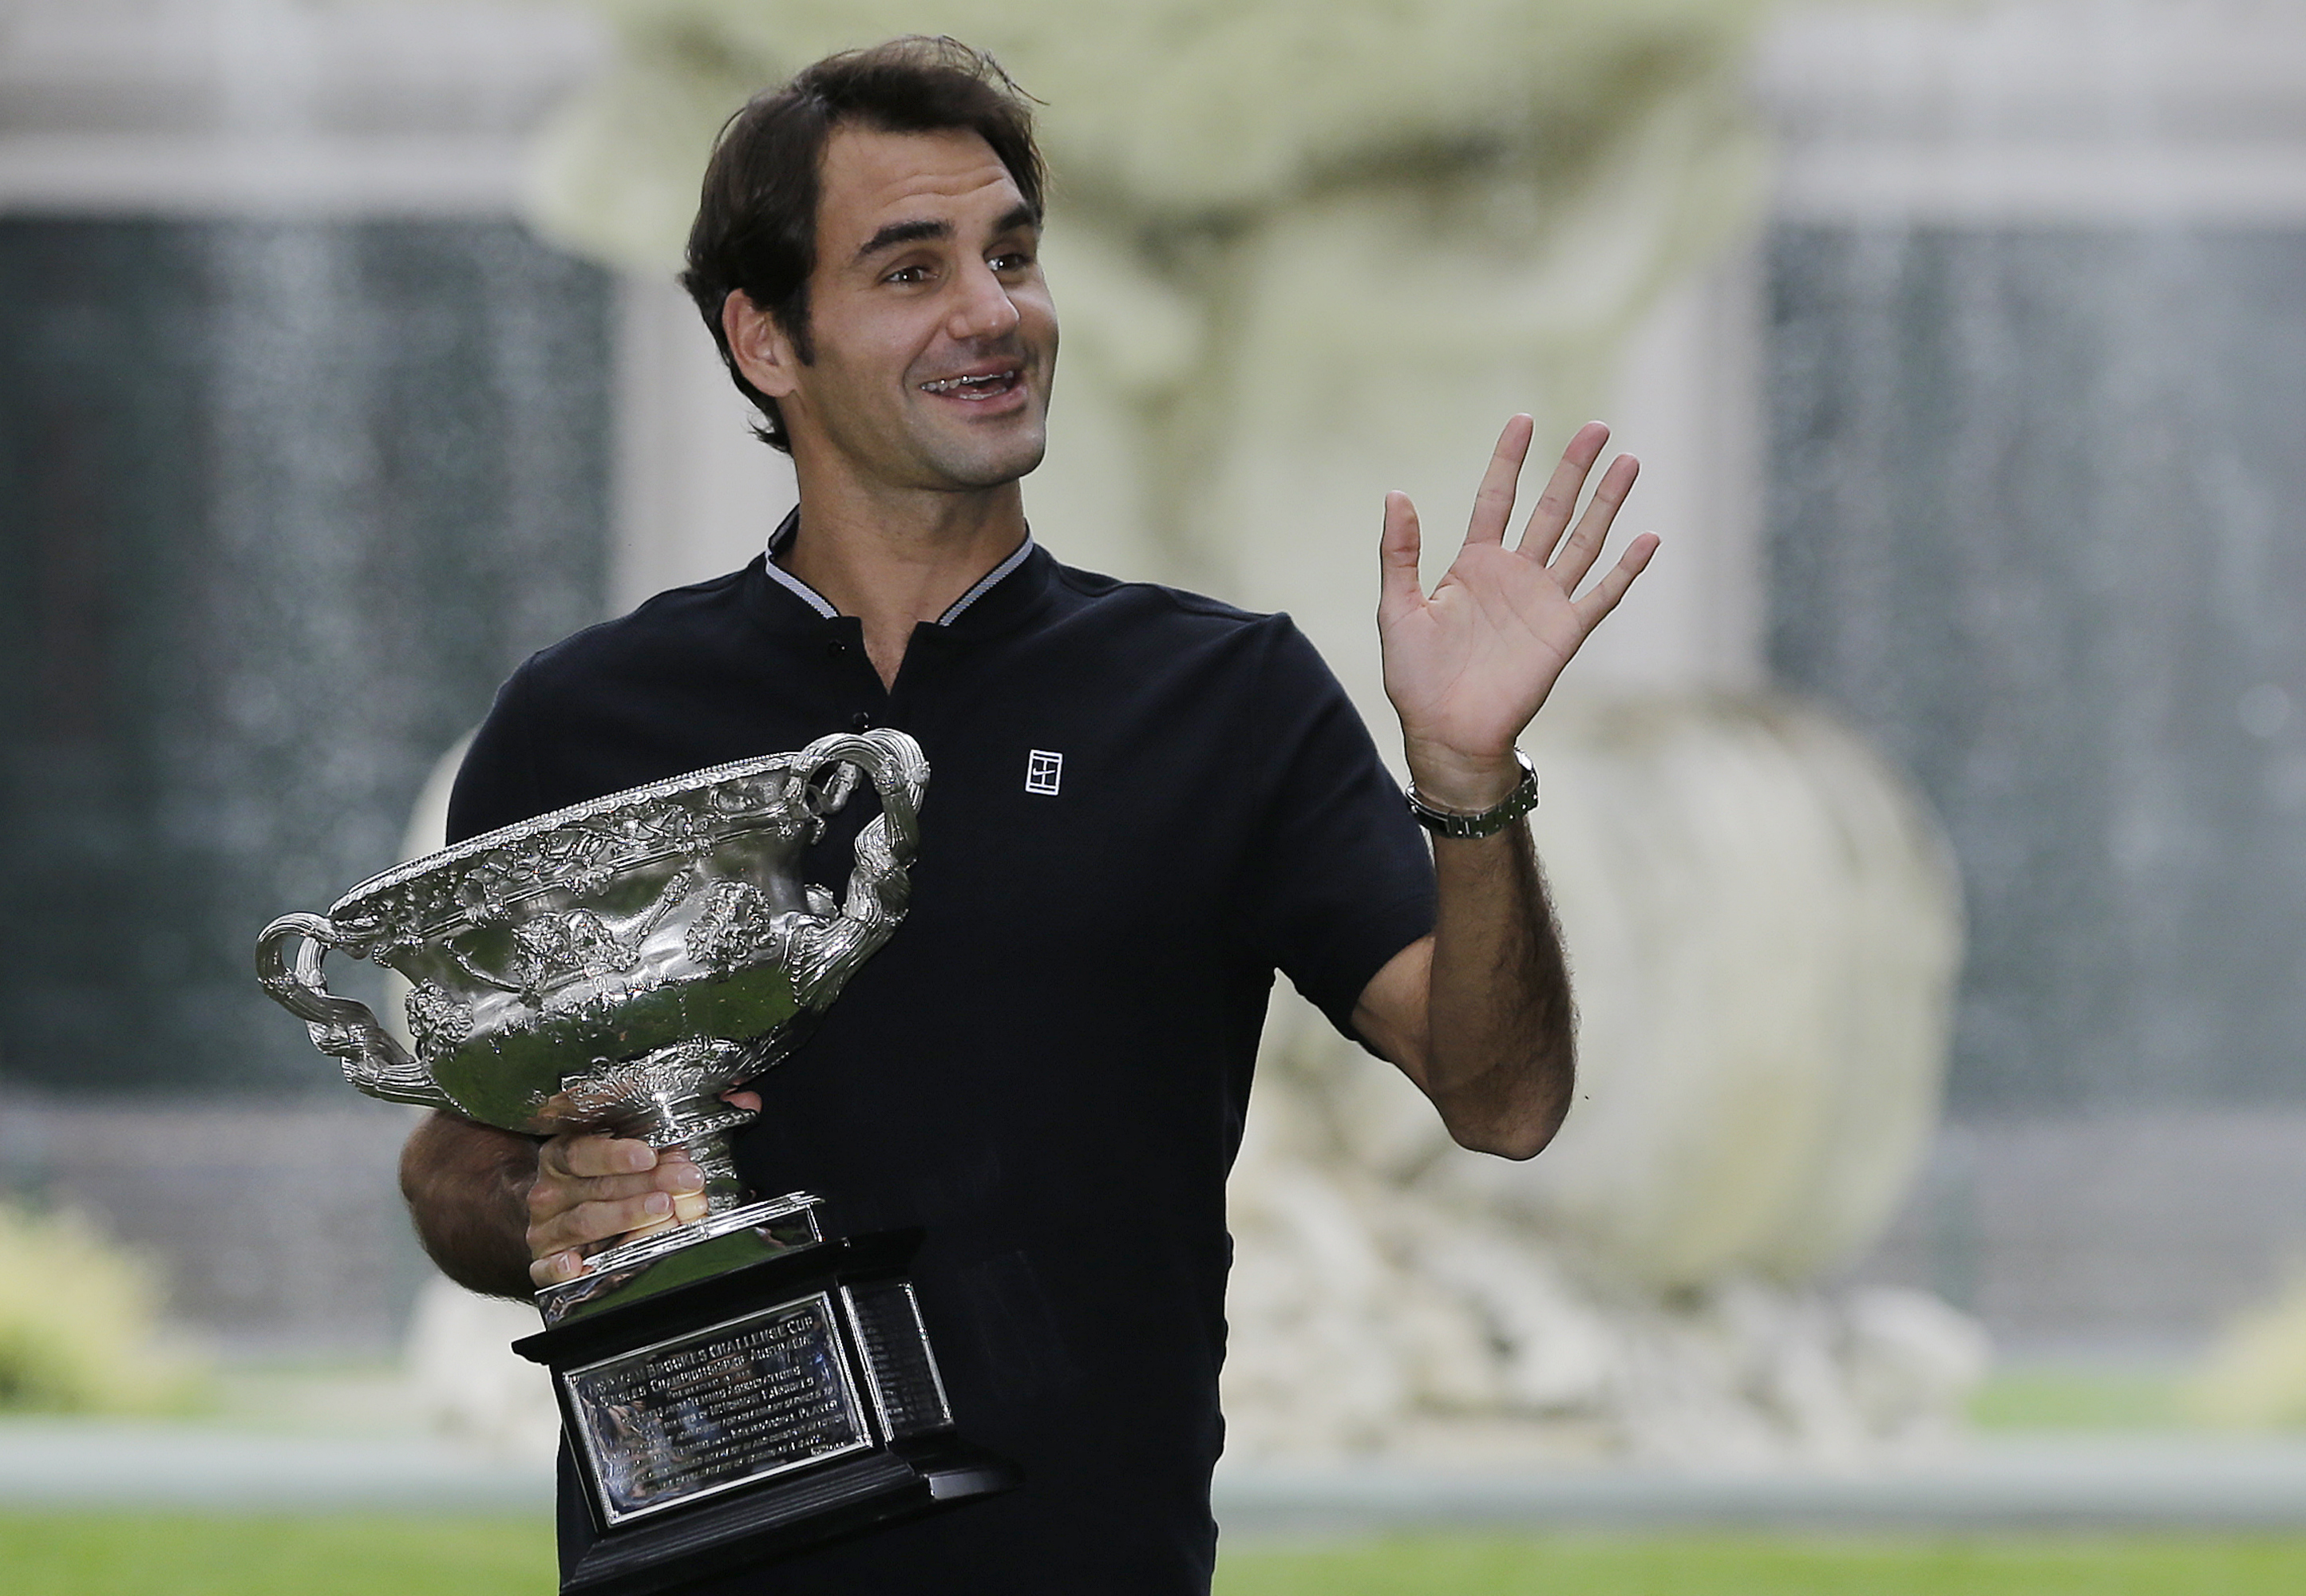 Switzerland's Roger Federer waves to fans as he holds his Australian Open trophy at Carlton Gardens in Melbourne, Australia, Monday, Jan. 30, 2017. Federer defeated Spain's Rafael Nadal in the men's final at the Australian Open tennis championships on Sun